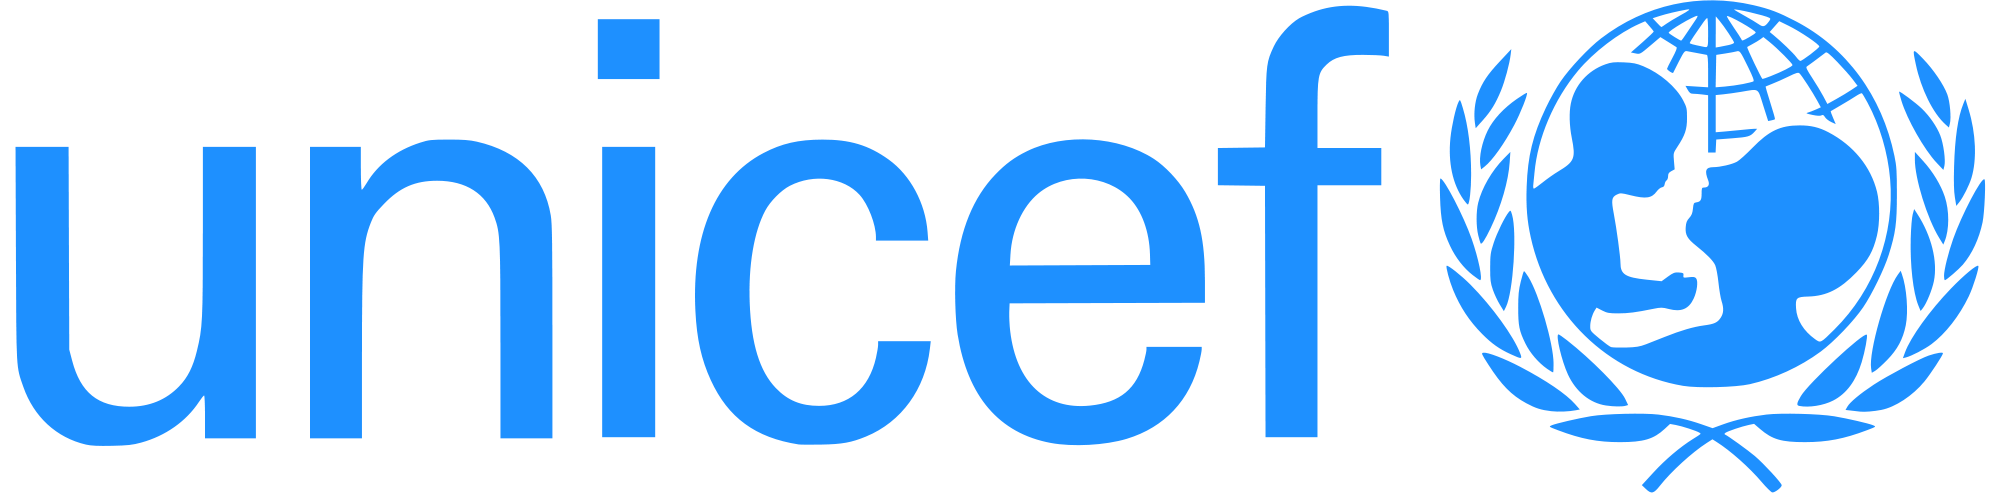 UNICEF Logo Transparent Background.png